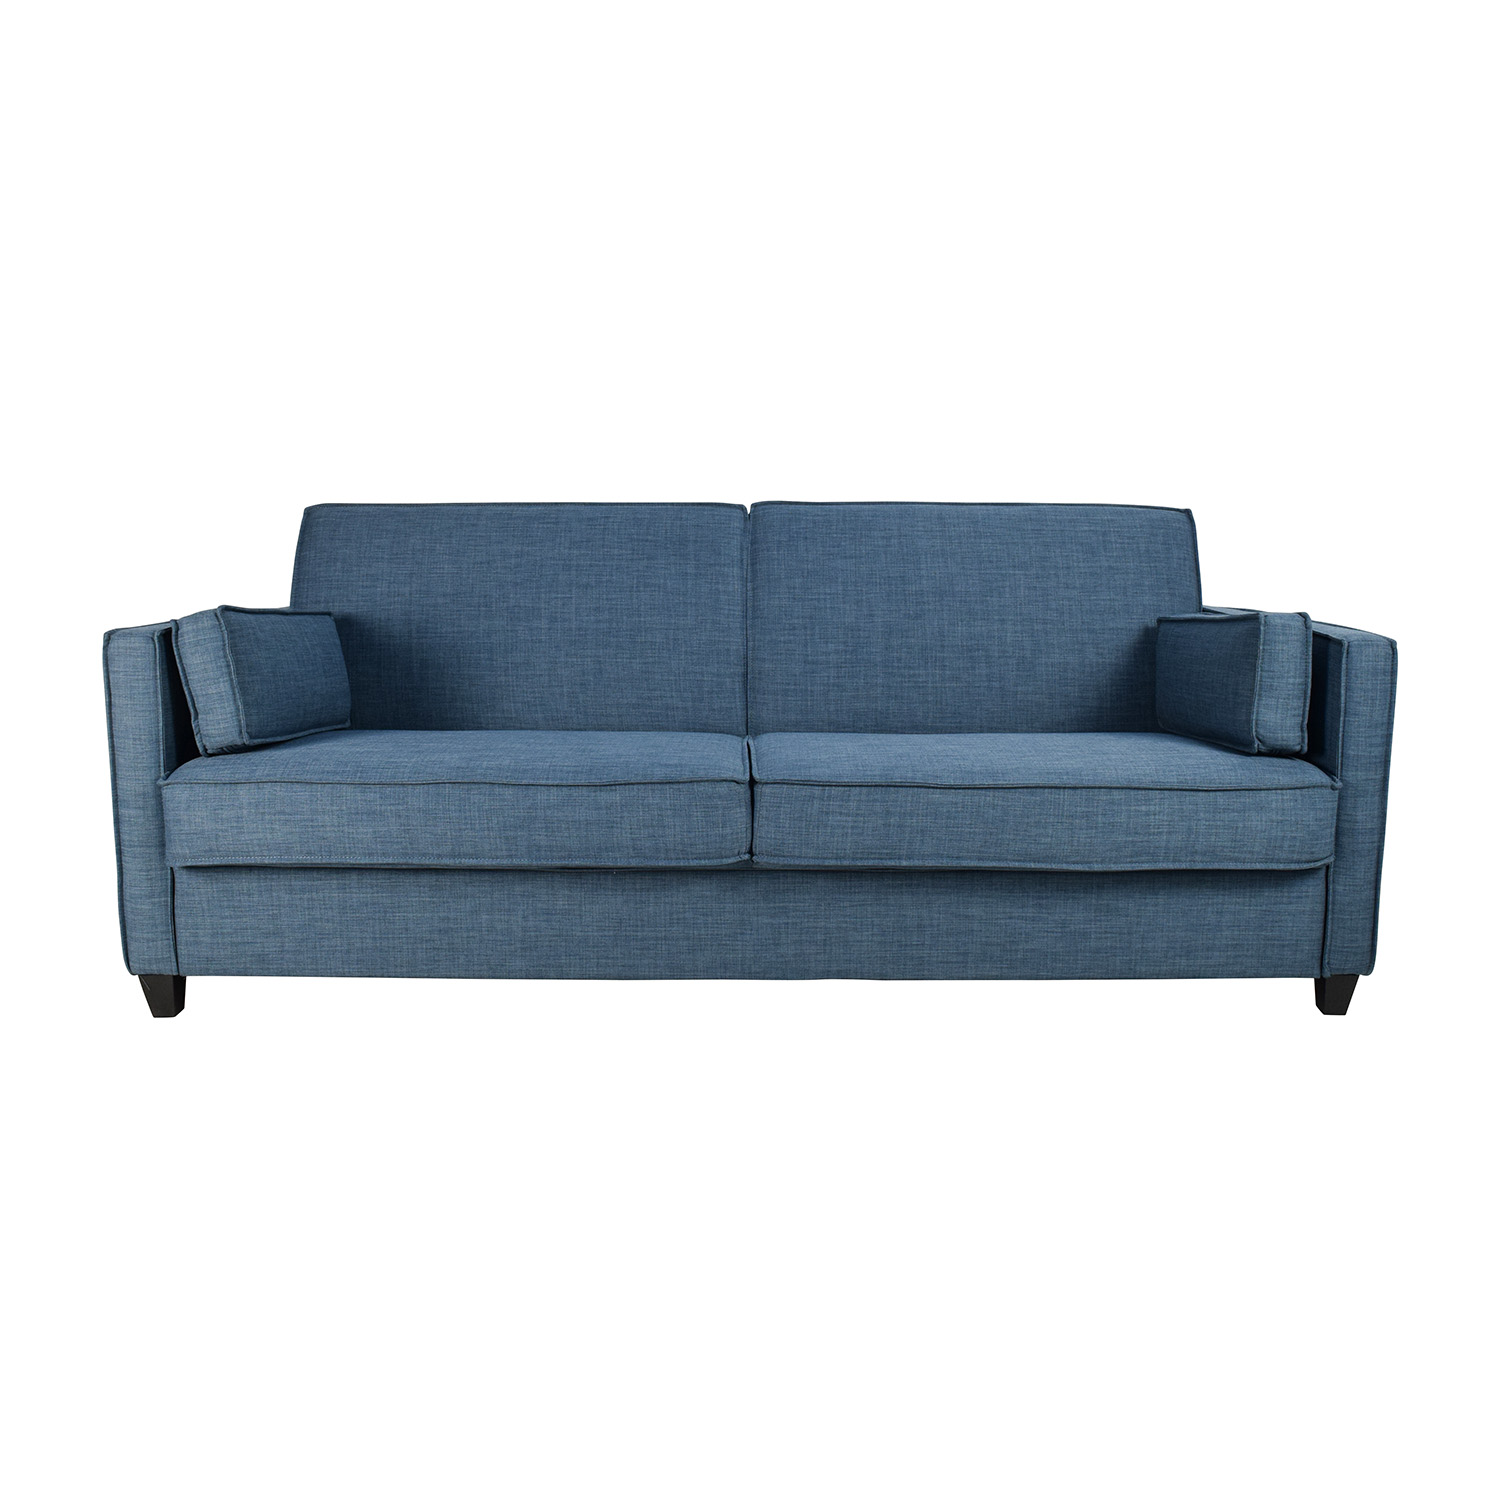 OFF Blue Full Size Convertible Storage Futon Sofas